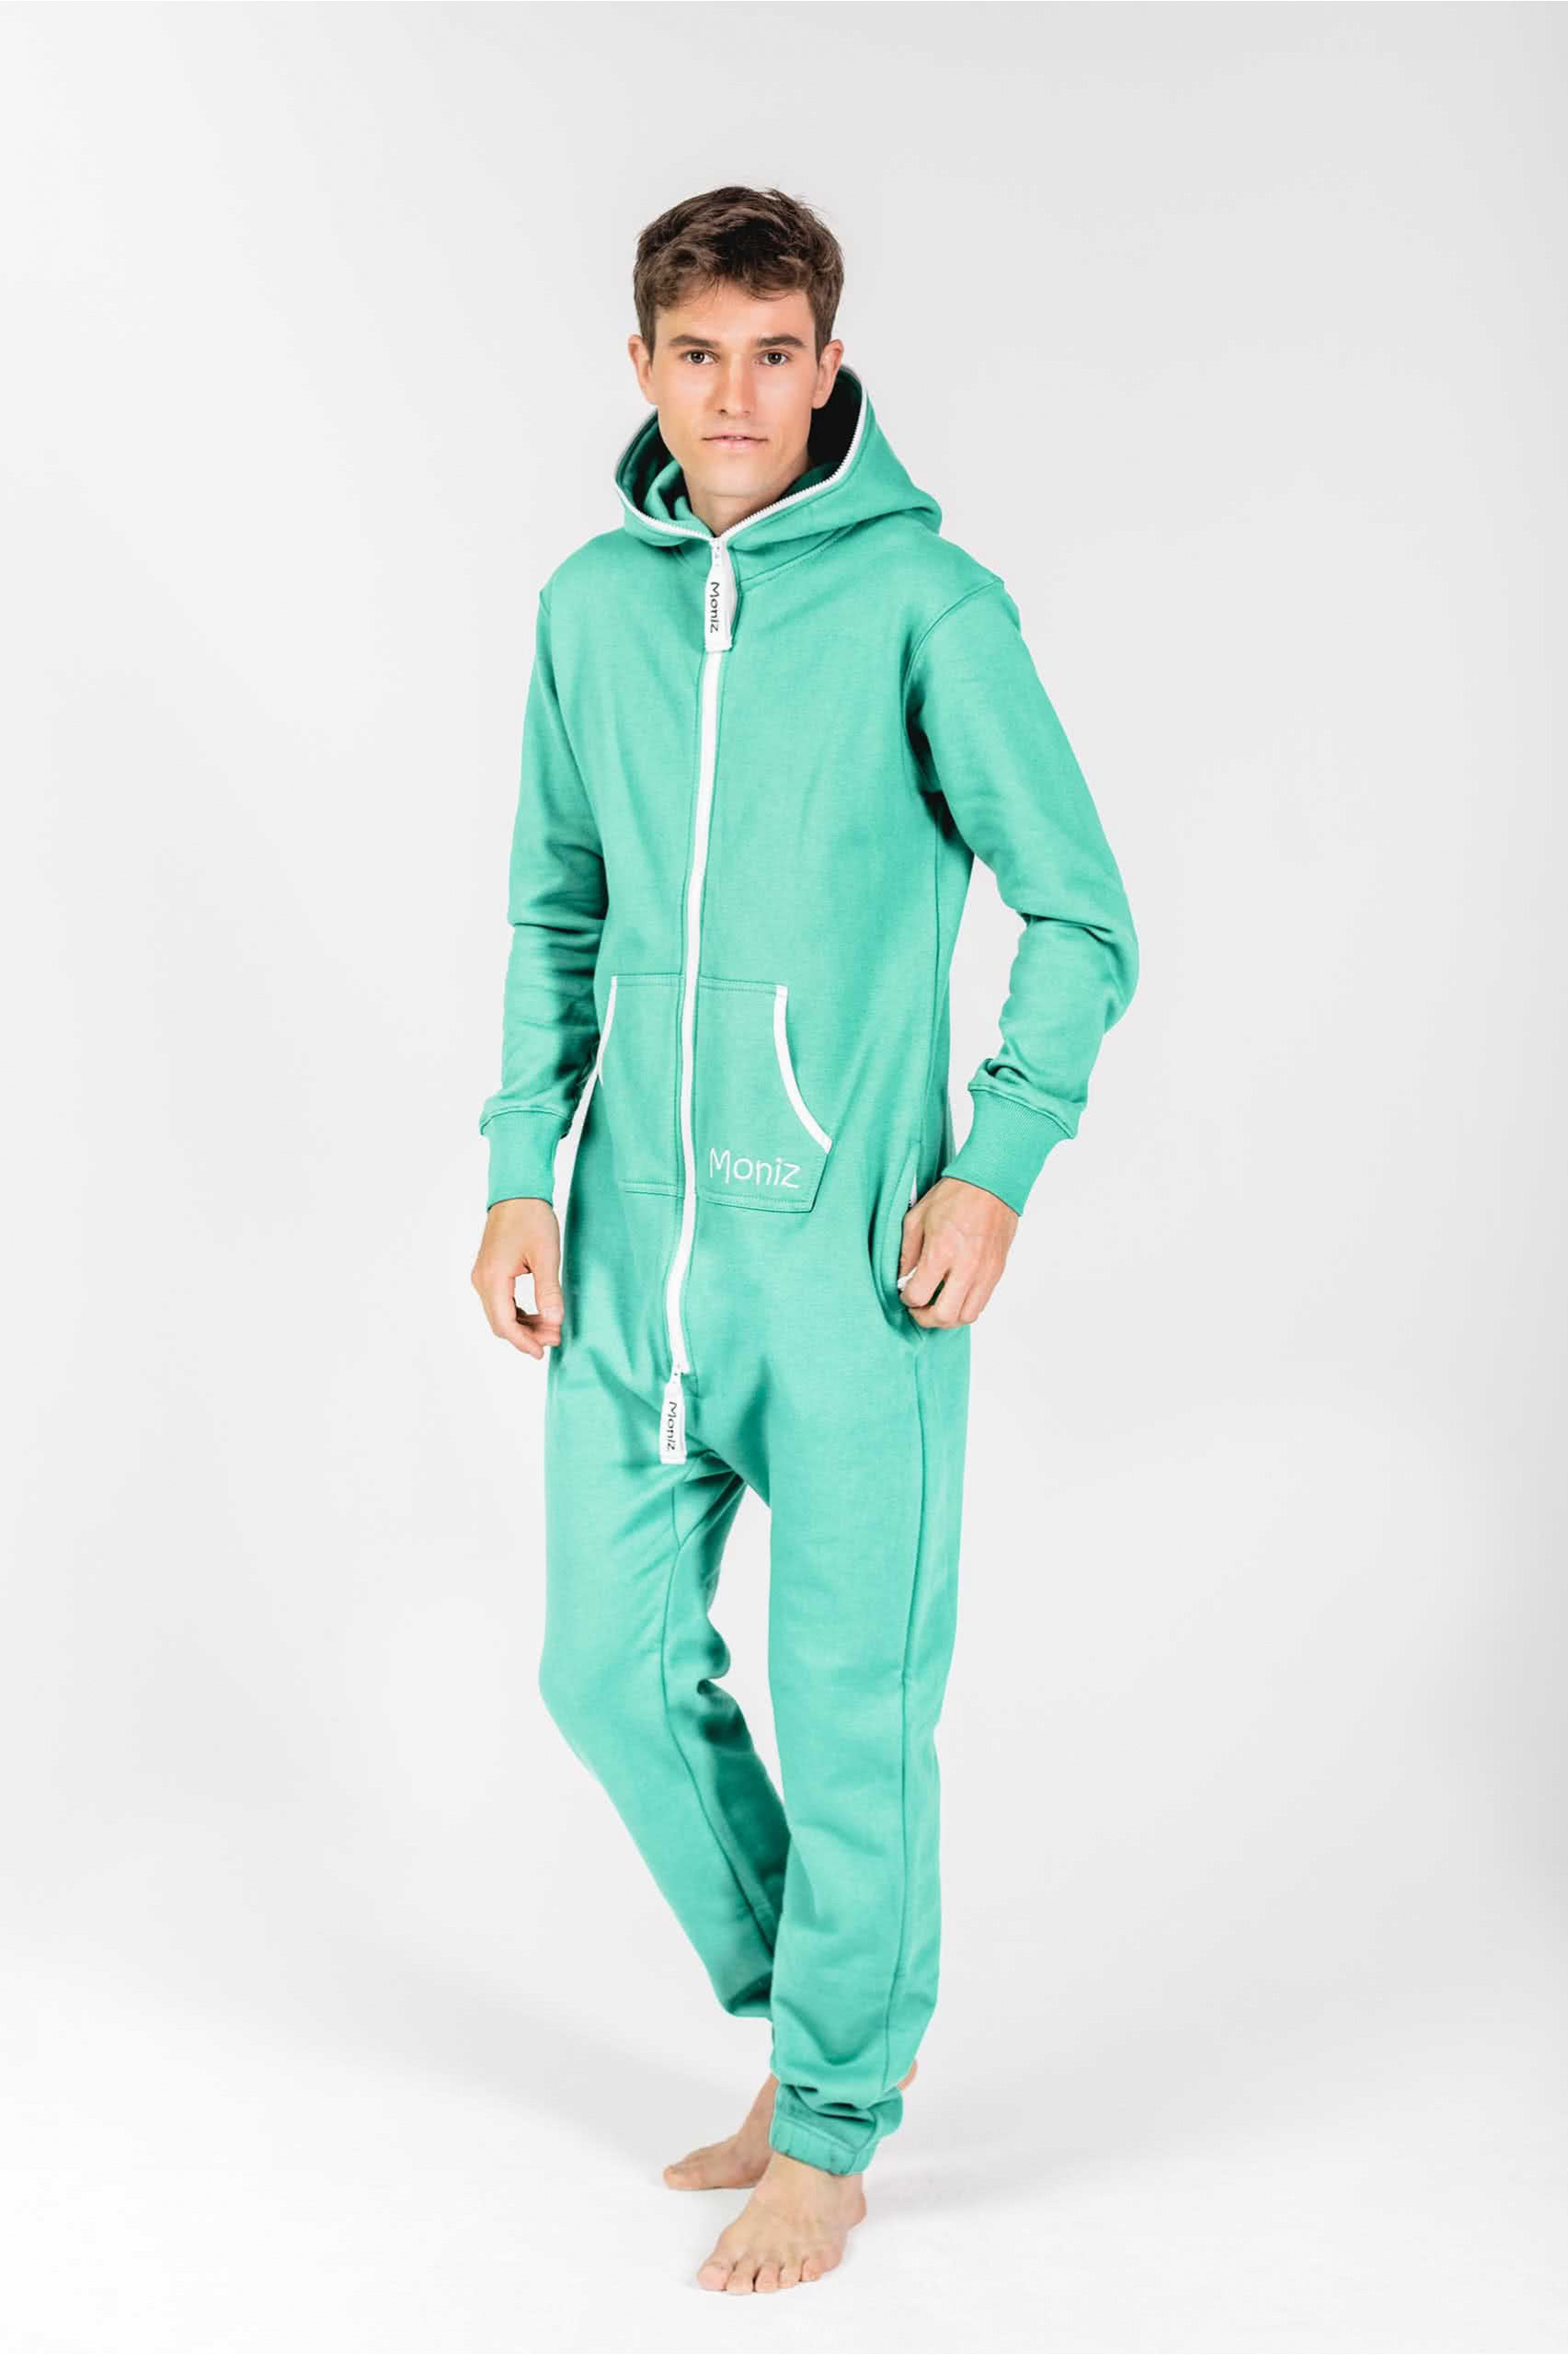 Moniz Herren Jumpsuit Mintgrün - Energetic Mint